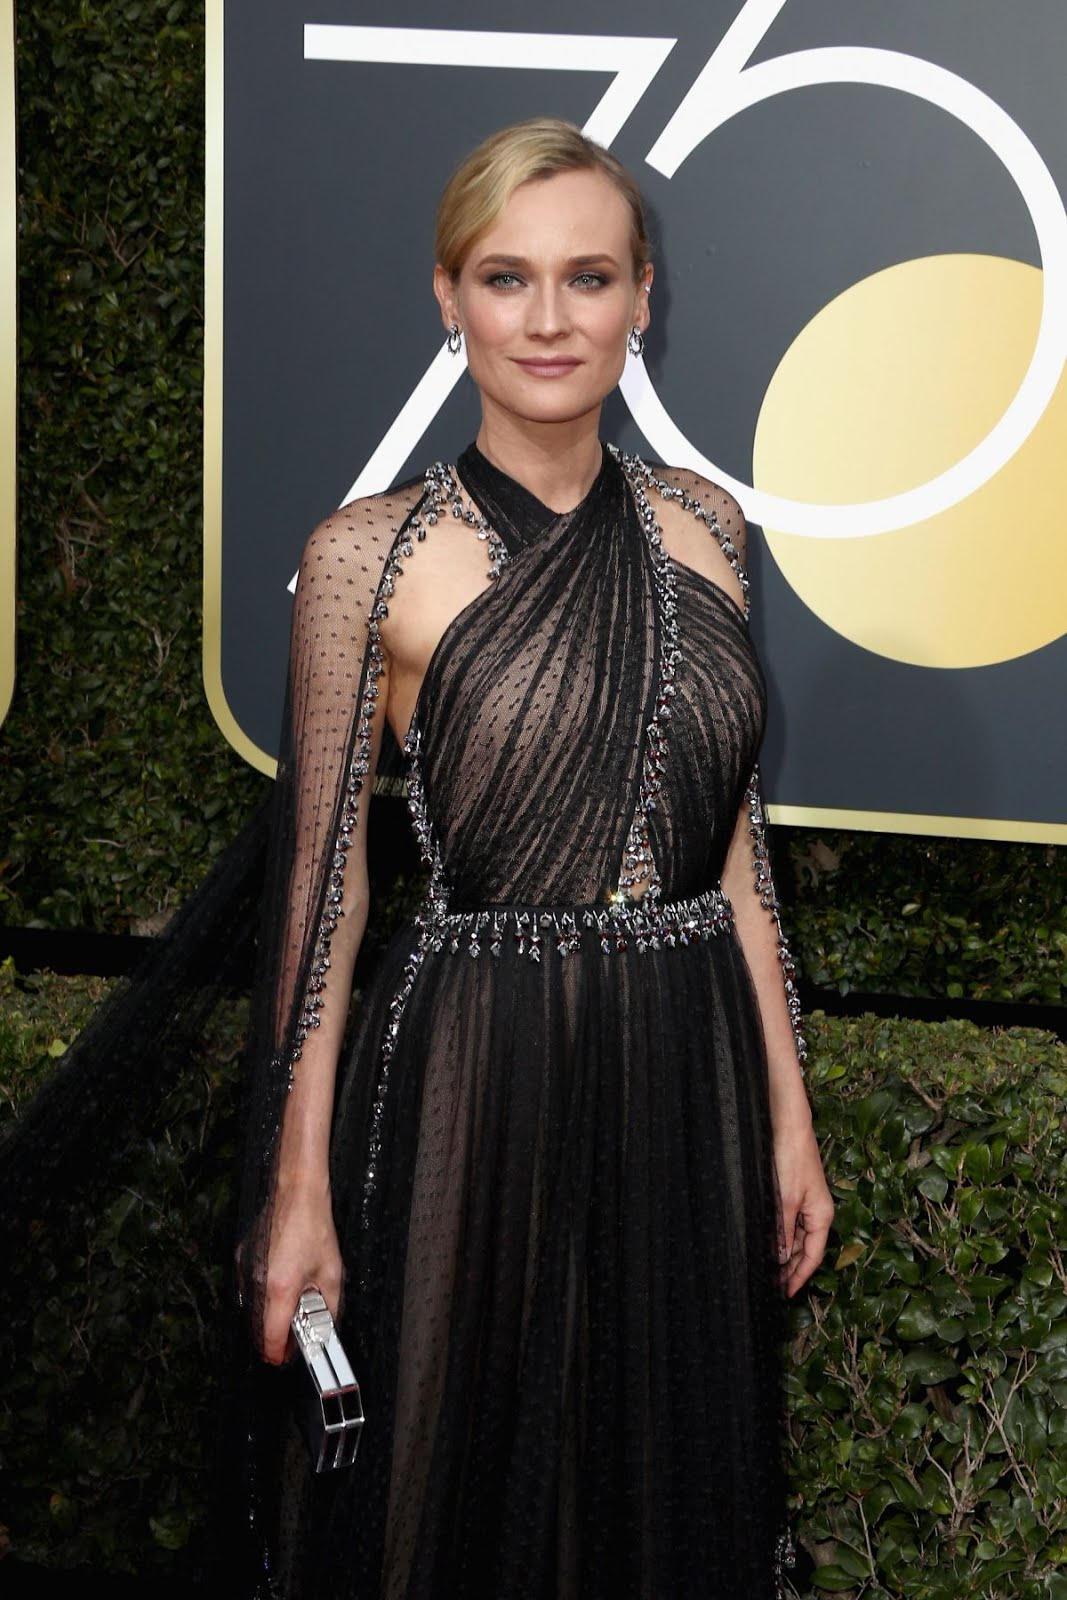 HD Wallpaper of Diane Kruger At 75Th Annual Golden Globe Awards In Beverly Hills